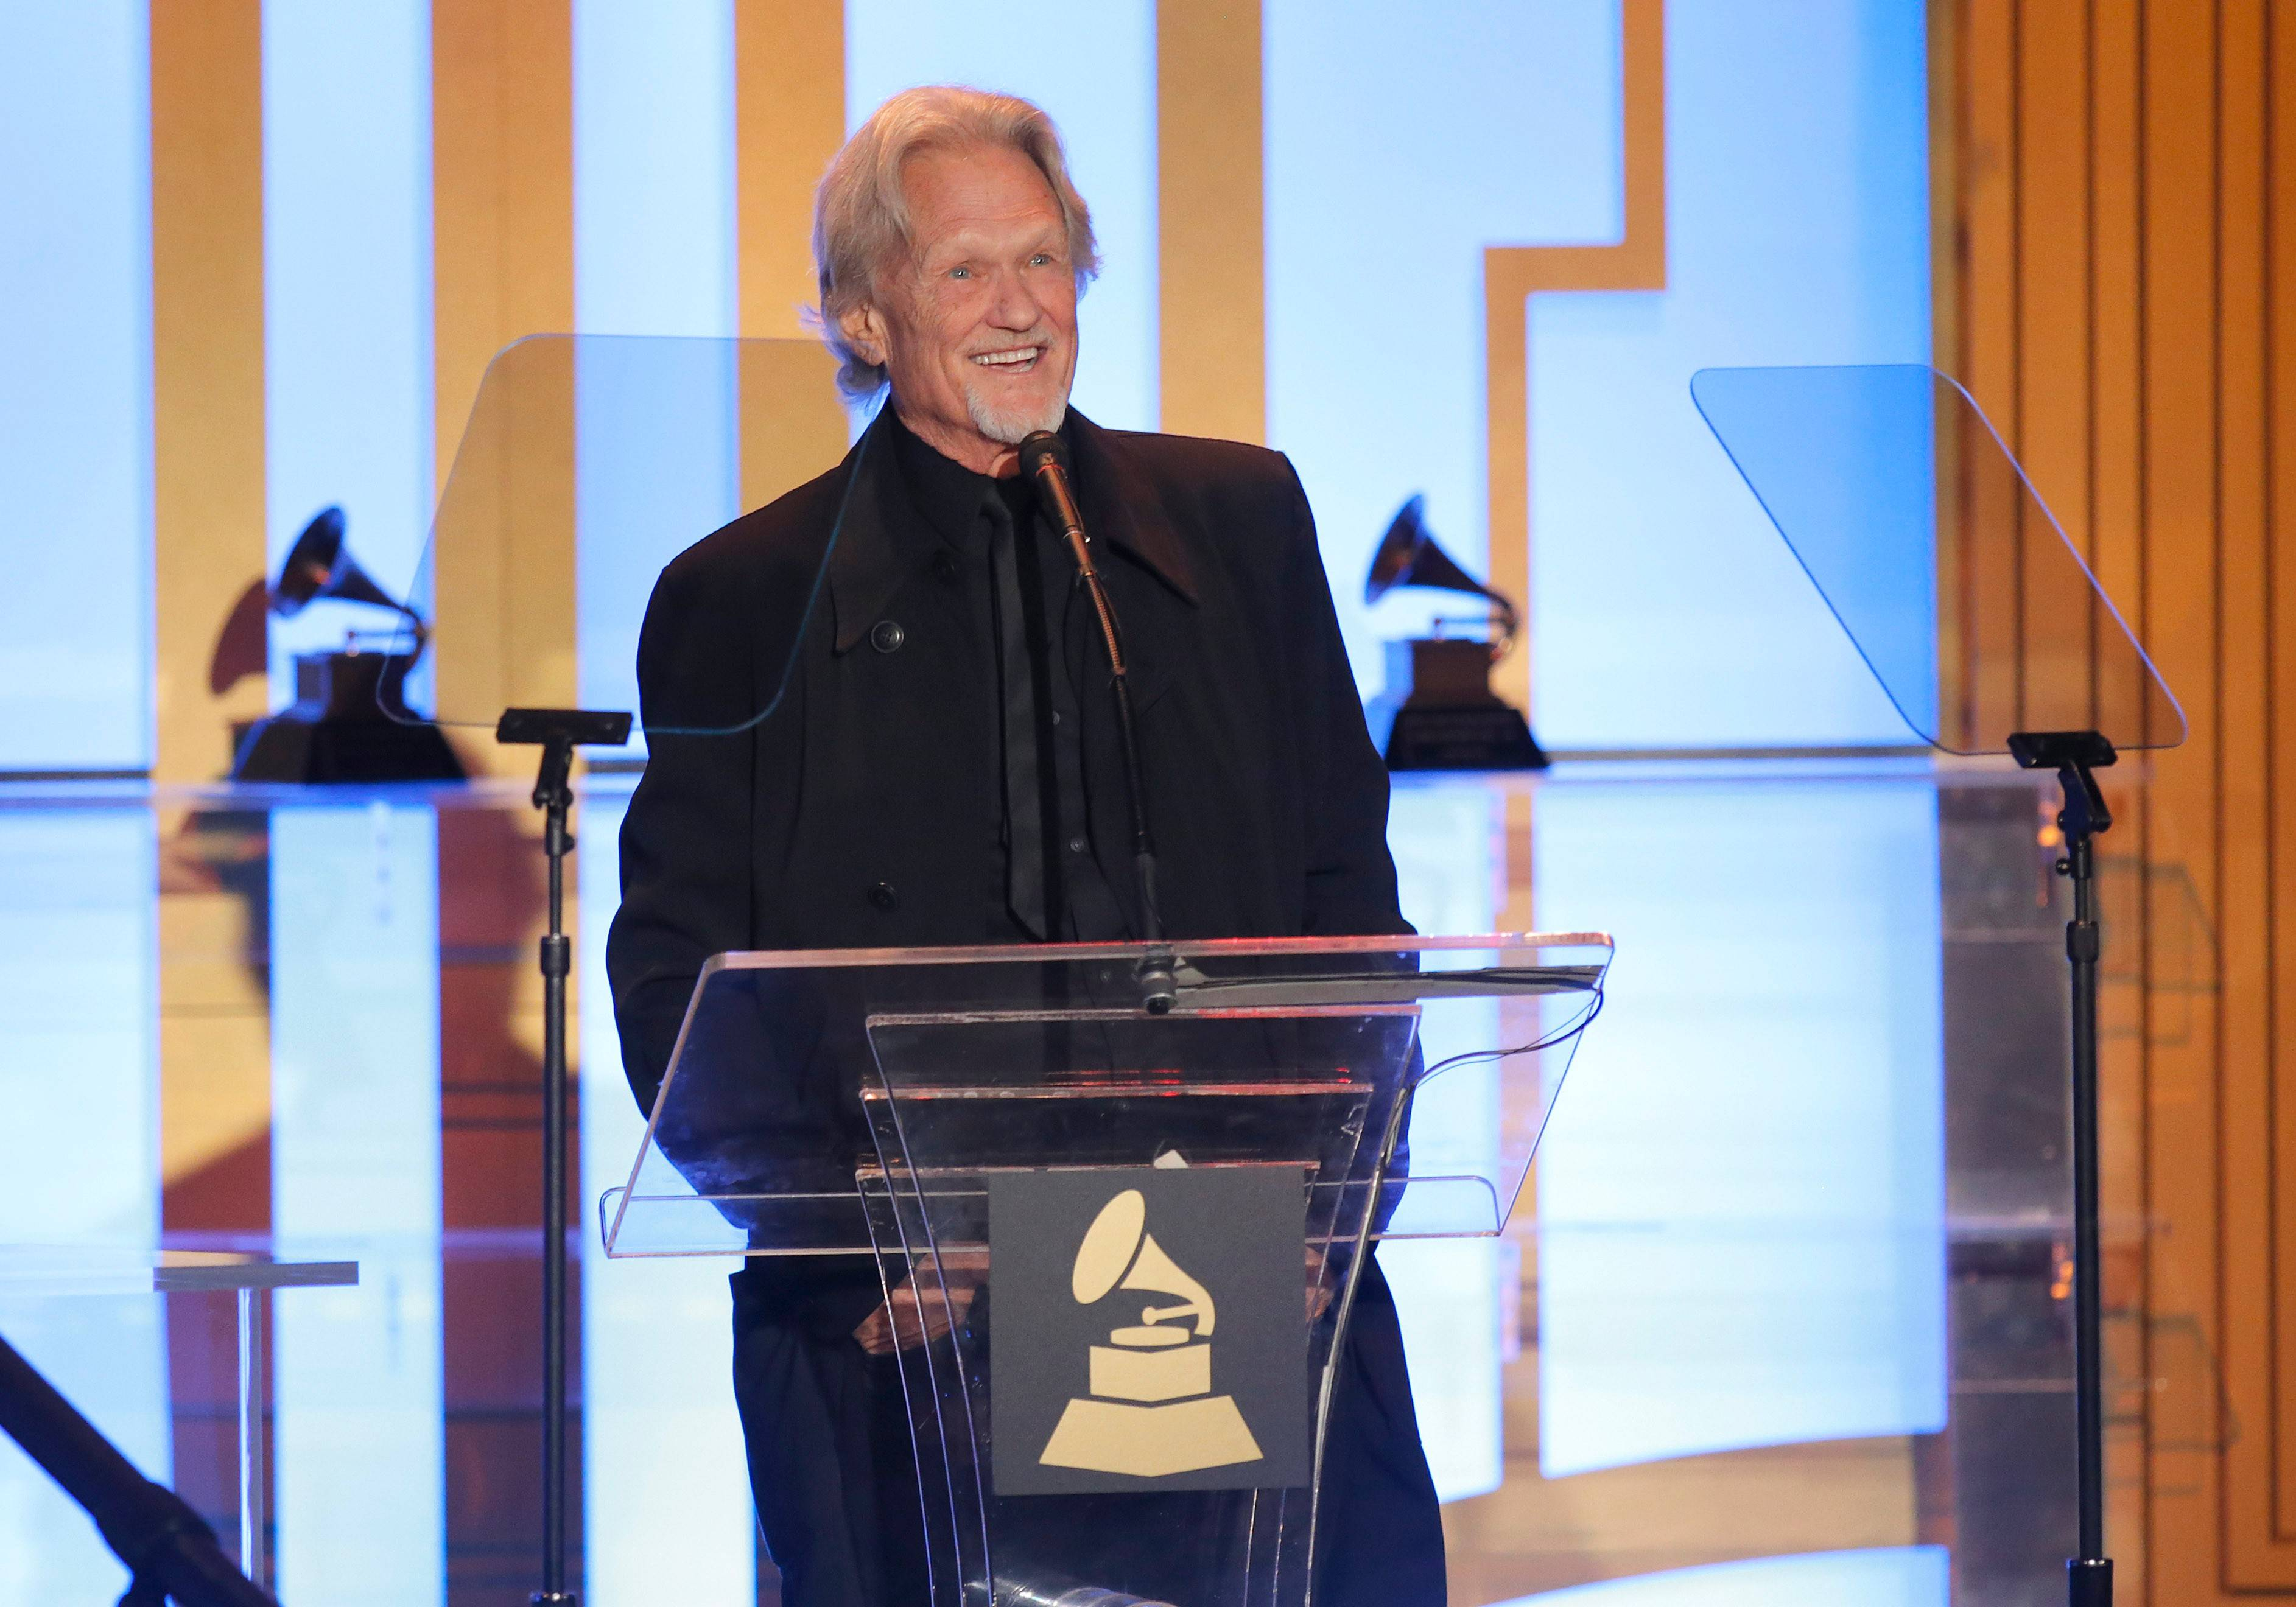 Kris Kristofferson received a lifetime achievement Grammy Award last month. Now 77, he's still making music and movies.